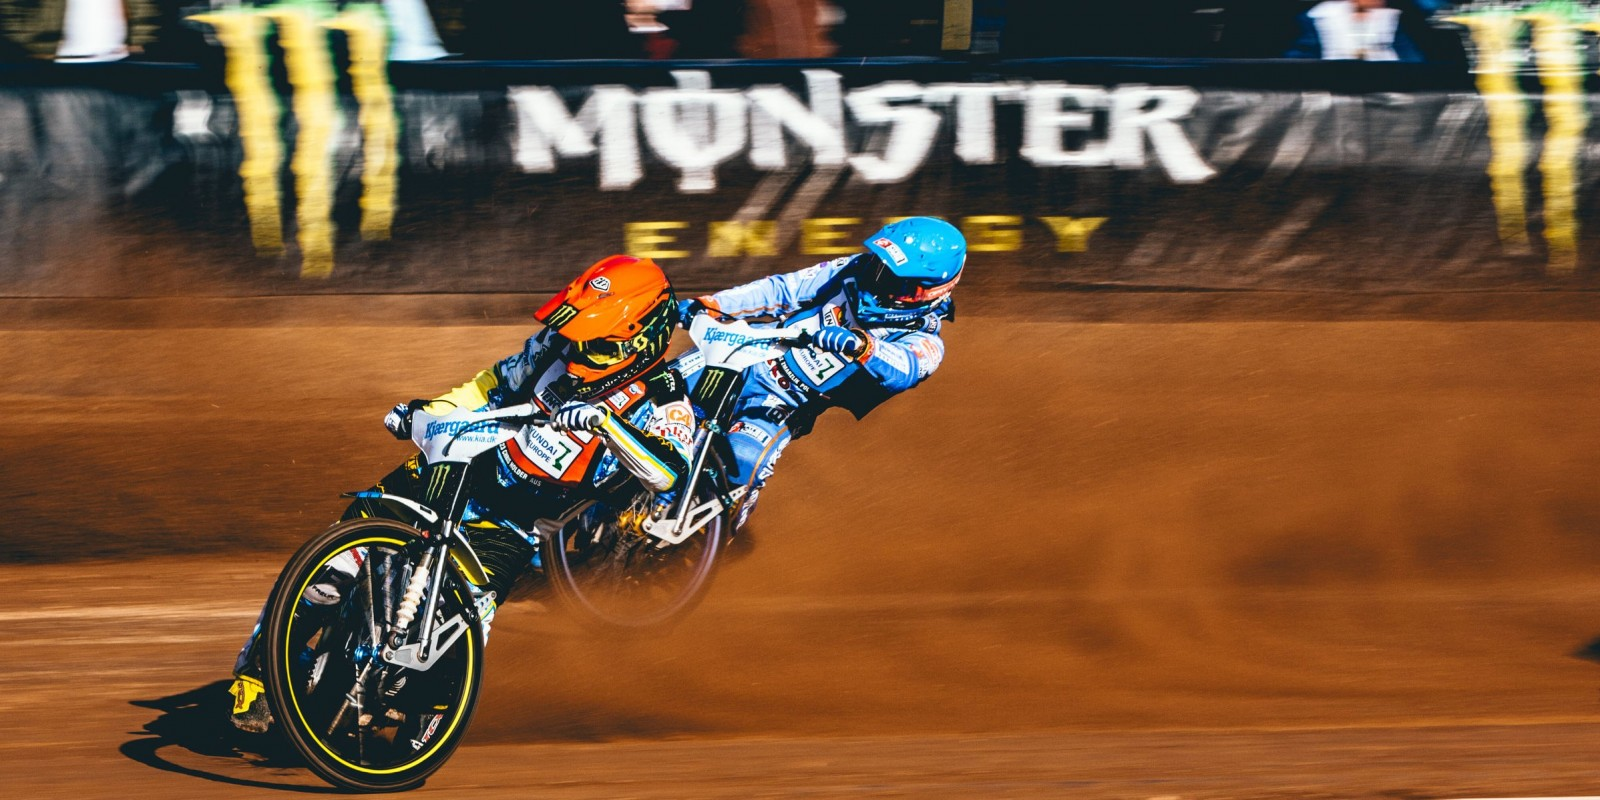 Images of Chris Holder from the Danish SGP